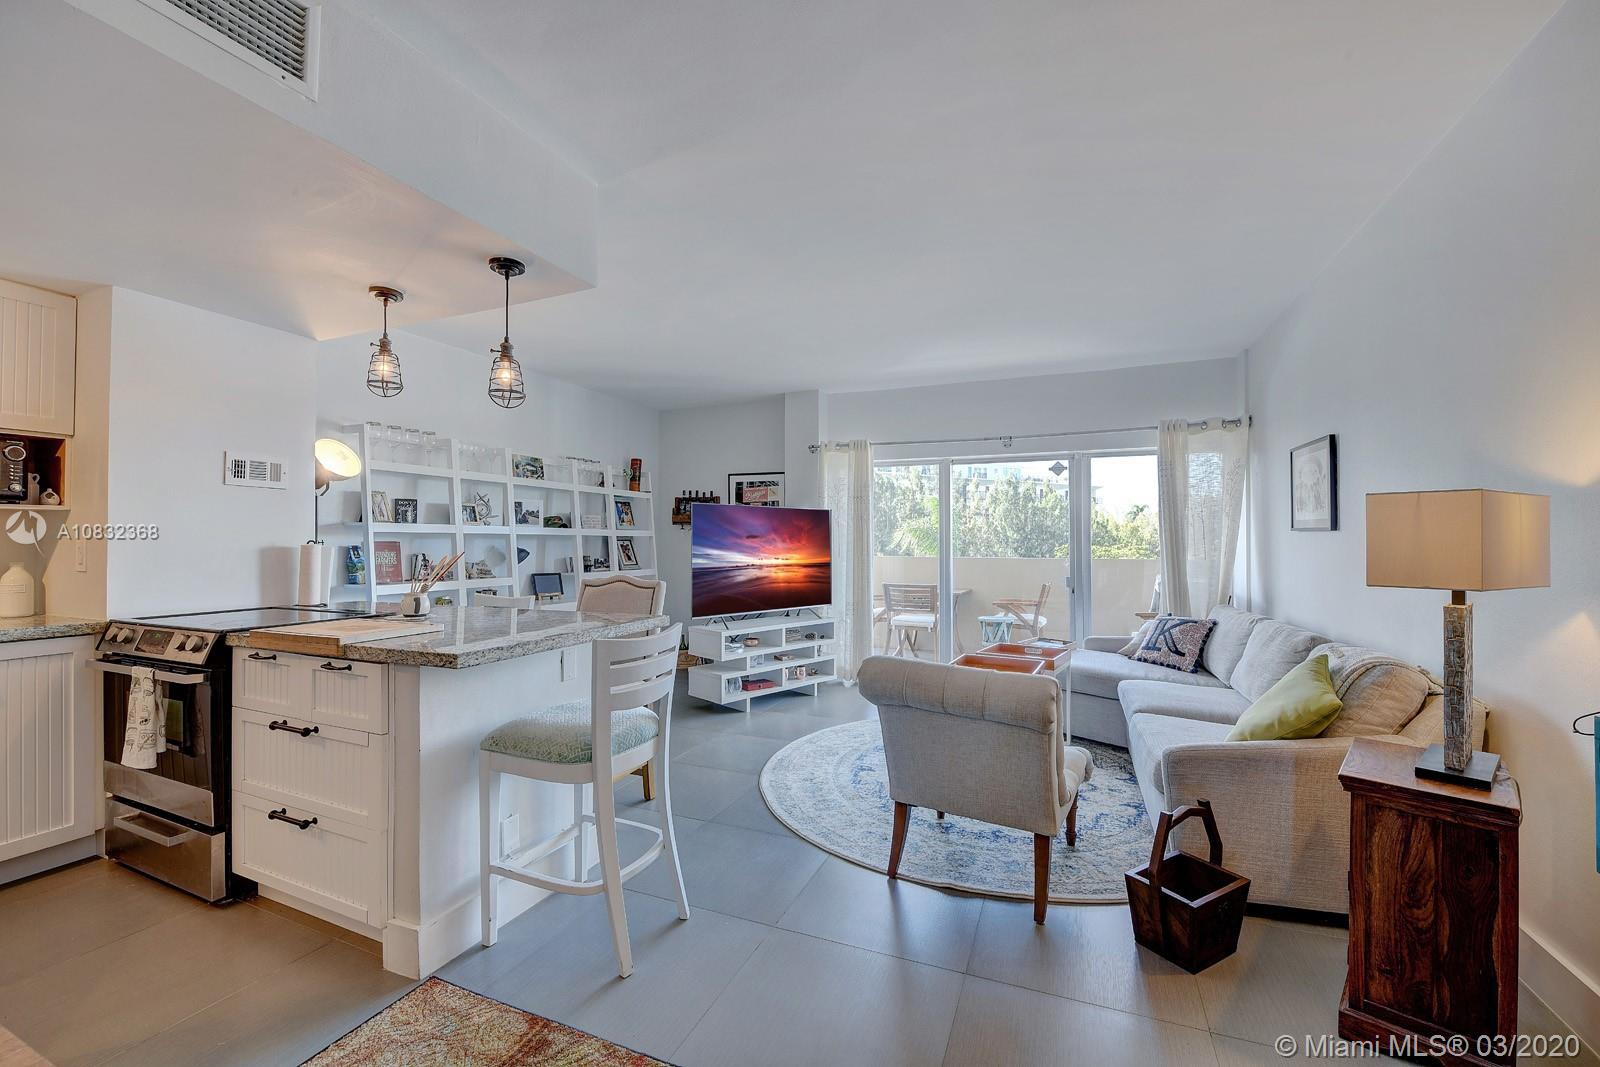 880 NE 69th St # 4L, Miami, Florida 33138, 2 Bedrooms Bedrooms, ,2 BathroomsBathrooms,Residential,For Sale,880 NE 69th St # 4L,A10832368